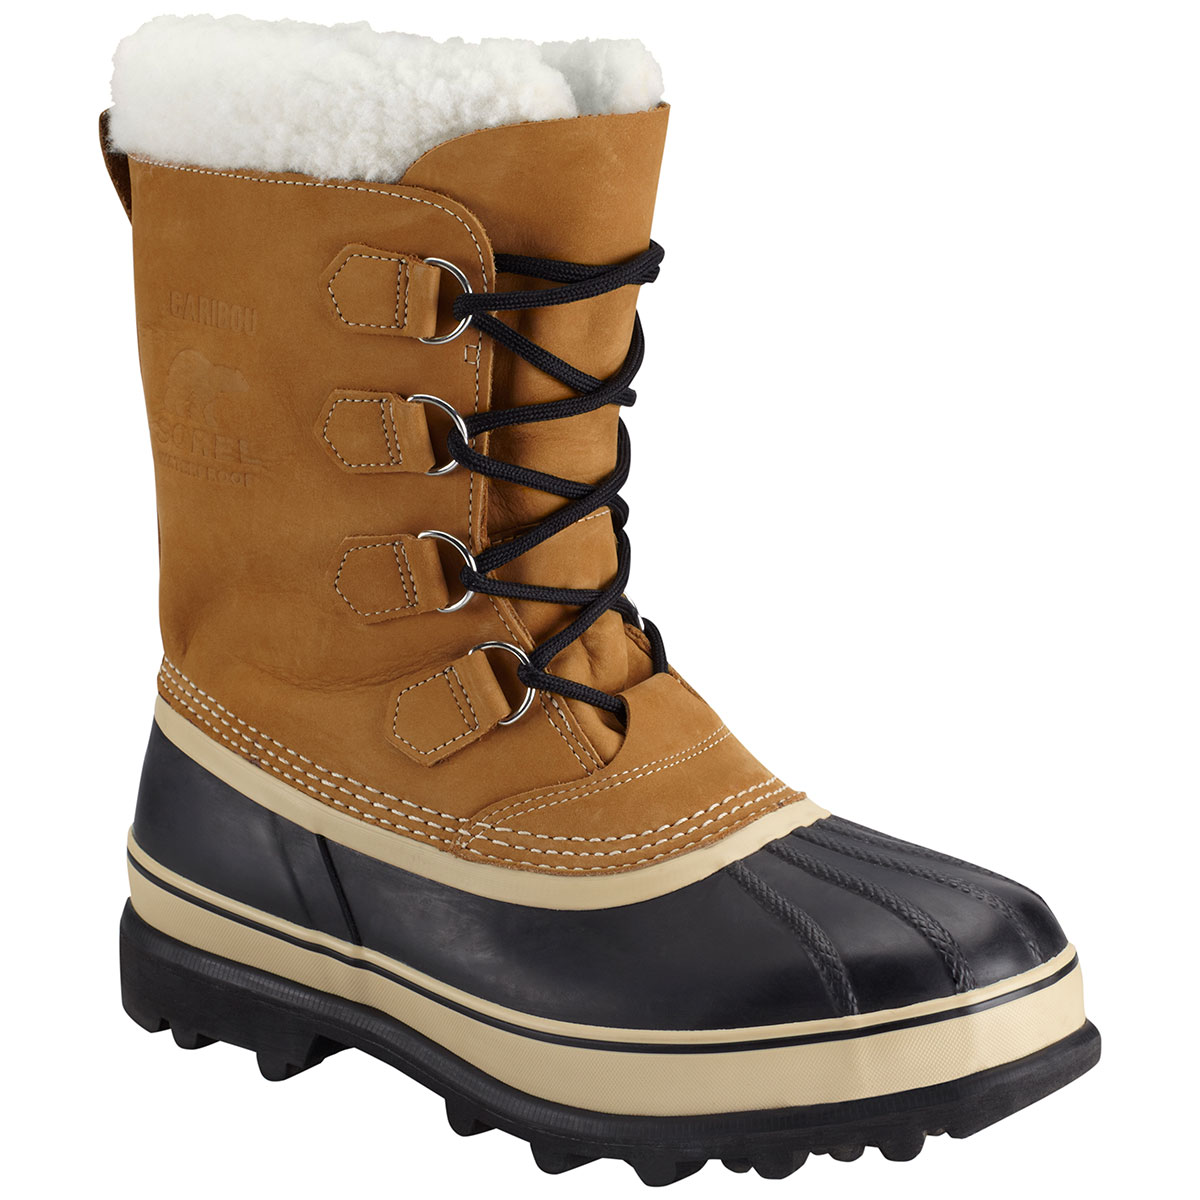 best winter boots for men - SOREL